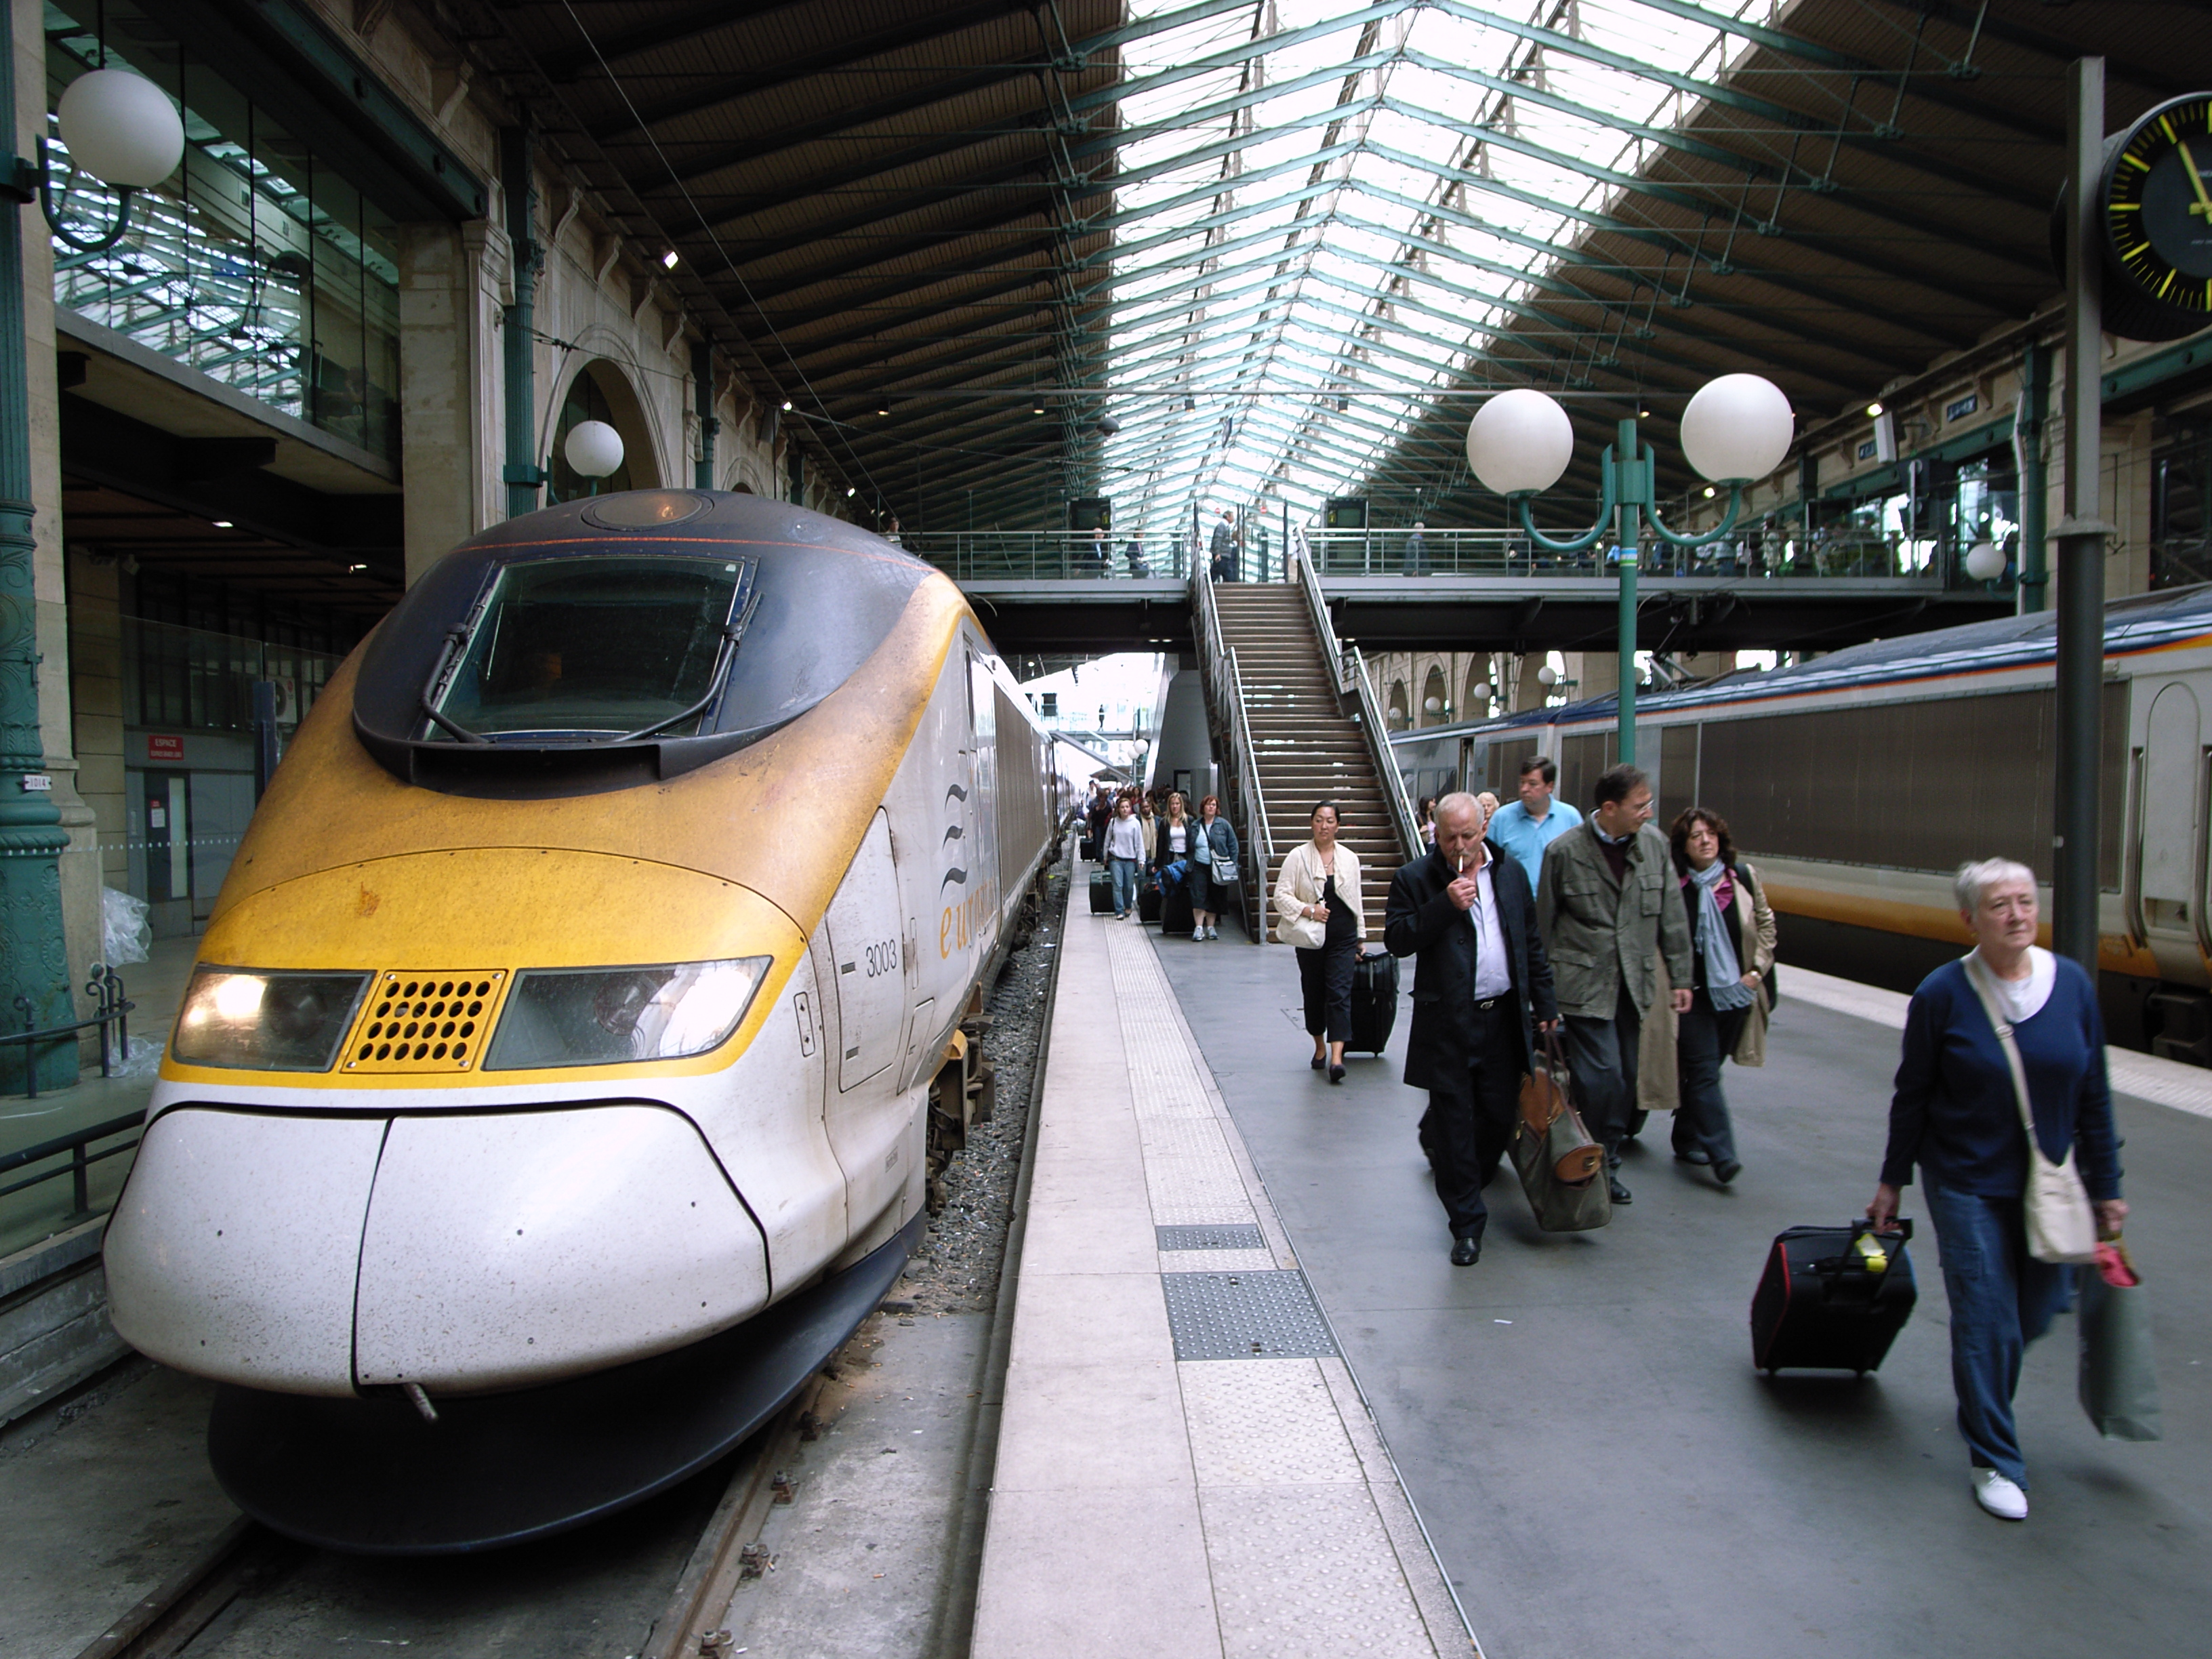 Eurostar is a high-speed train connecting Great Britain to Continental Europe. The Eurostar travels via the Channel Tunnel, and brings you from London to Paris, Brussels or Amsterdam in just a few hours.